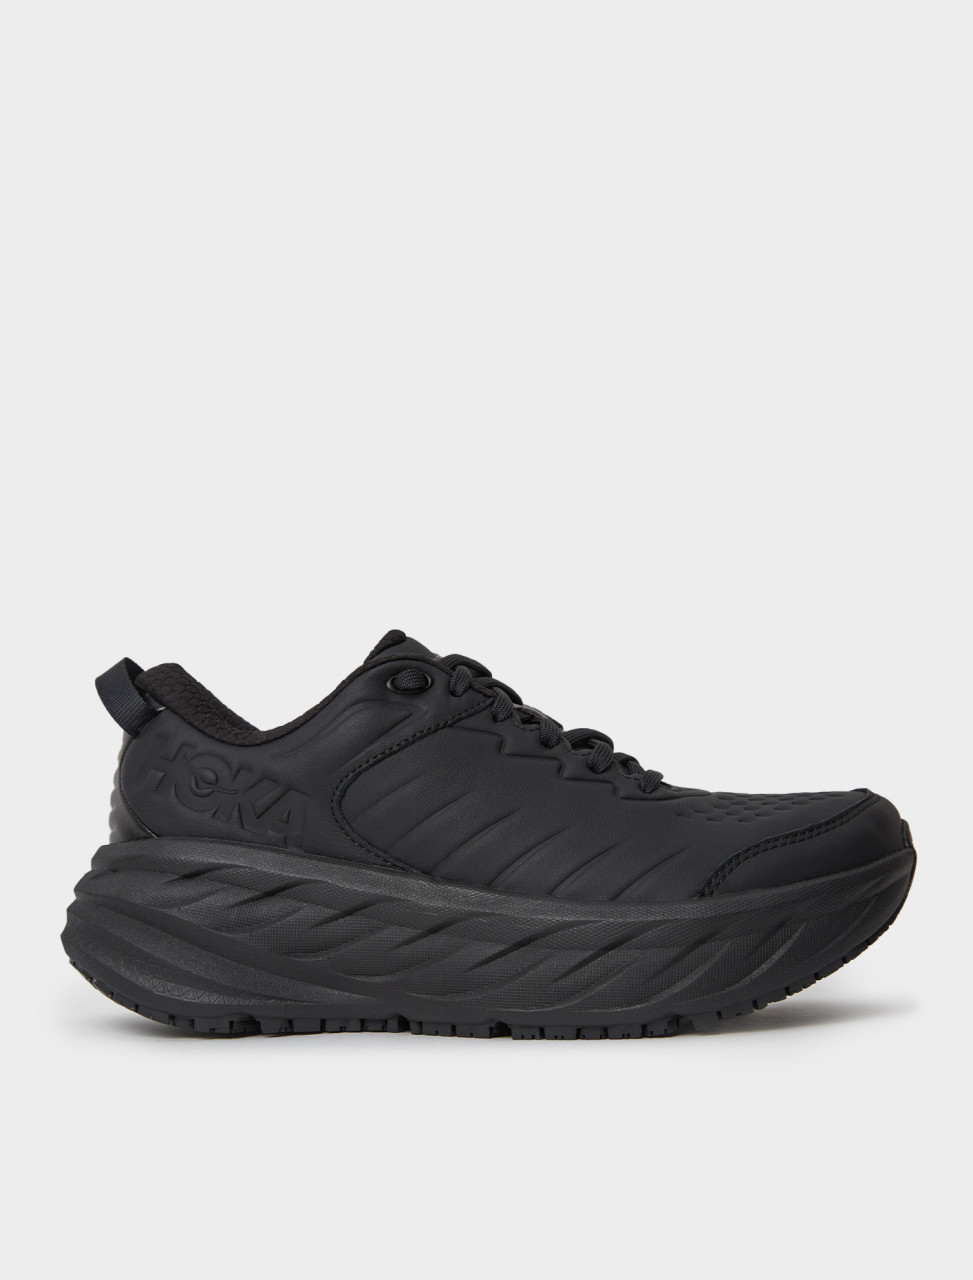 Hoka One One Women's Bondi SR Sneaker in Black